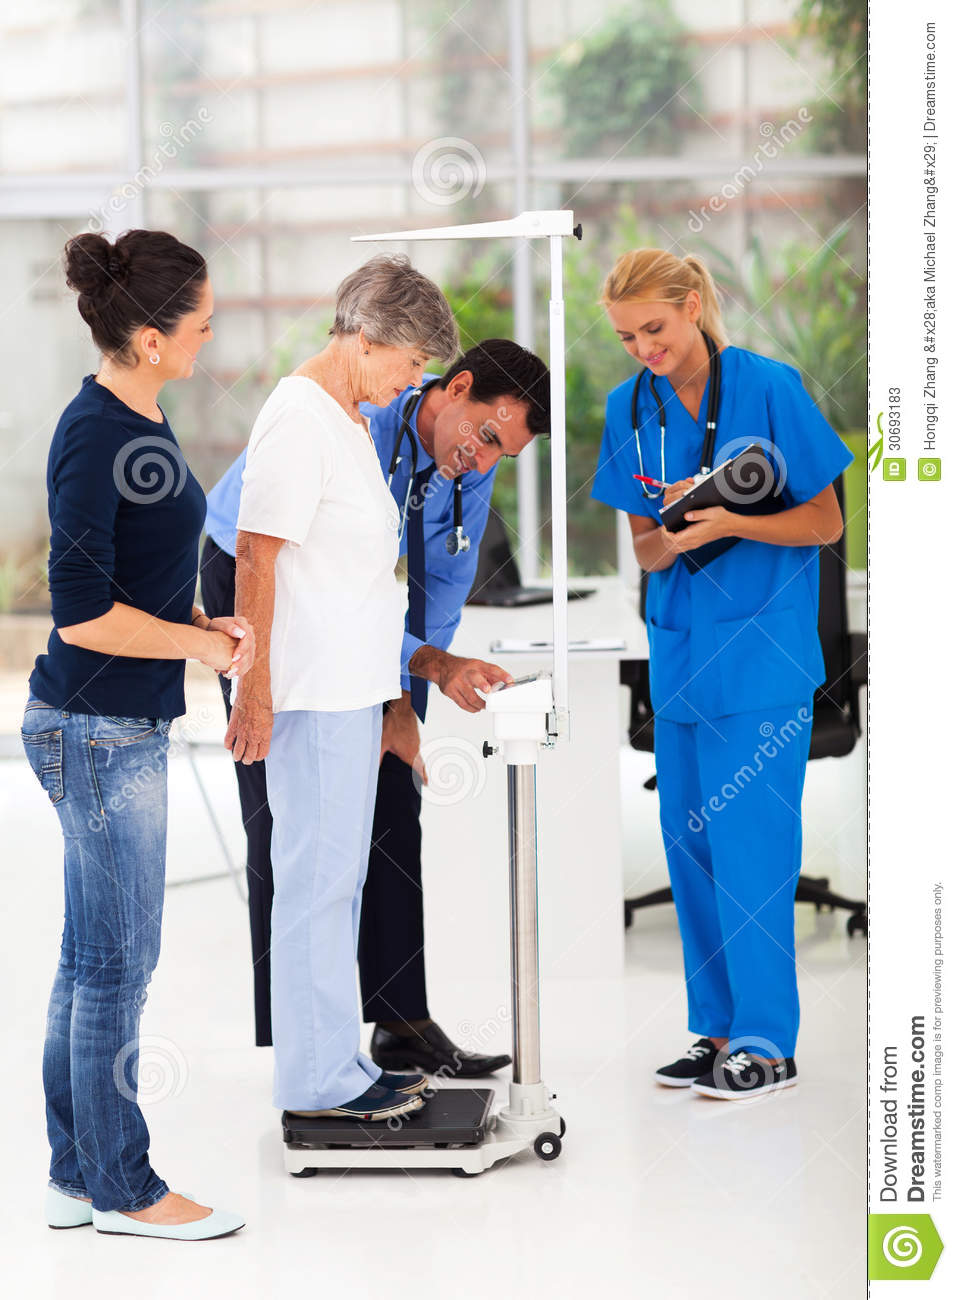 doctor measuring height weight stock image